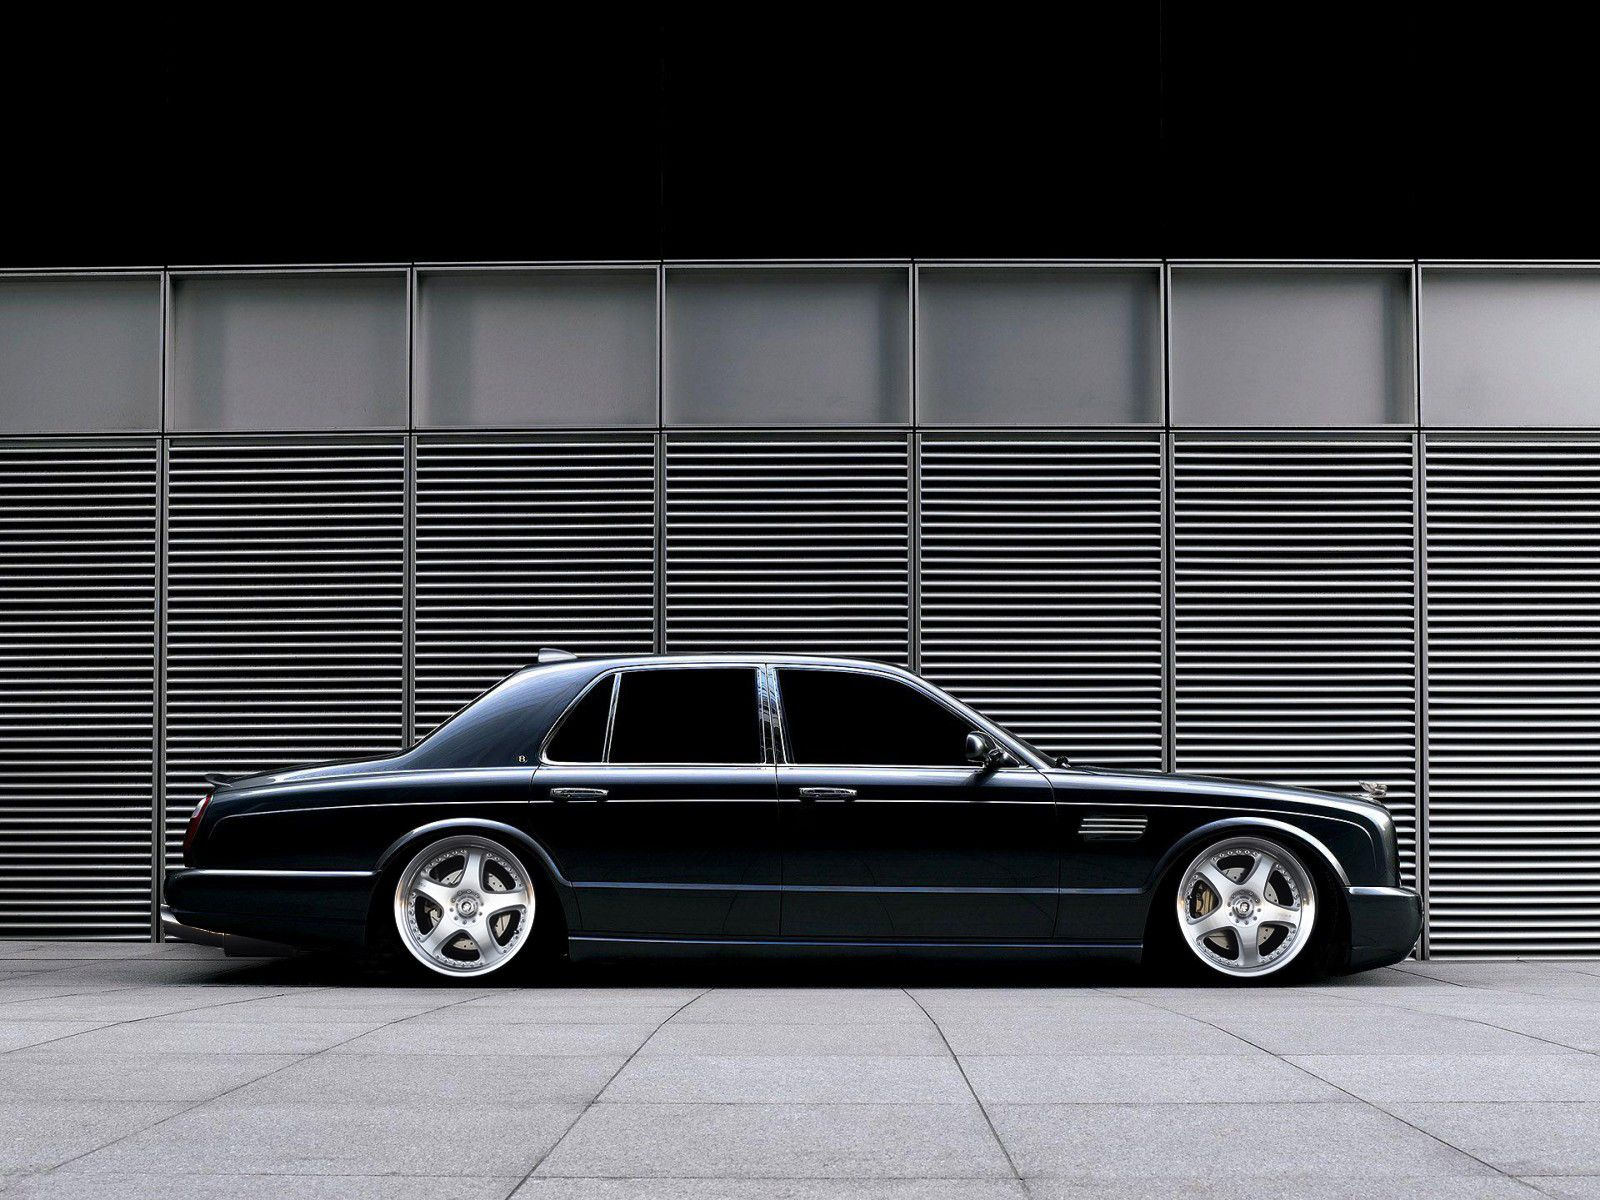 Japans rolls royce google search trucks pinterest rolls bentley arnage several cows hundreds of dinosaurs and a forest of trees sacrificed themselves to bring you this masterpiece of excess and luxury vanachro Choice Image